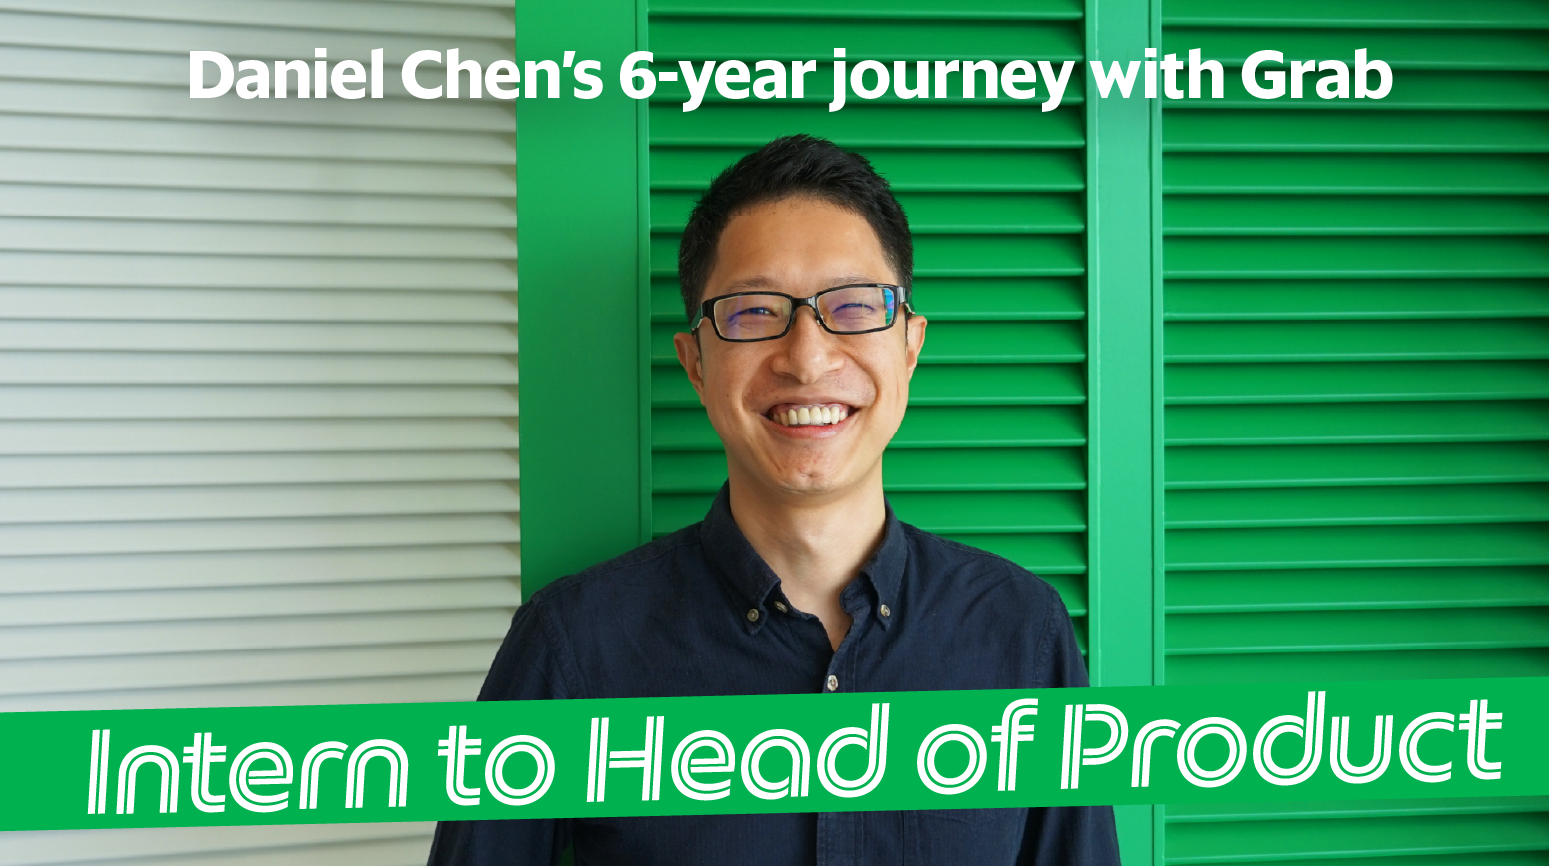 6 years at Grab: Daniel's journey from Intern to Head of Product